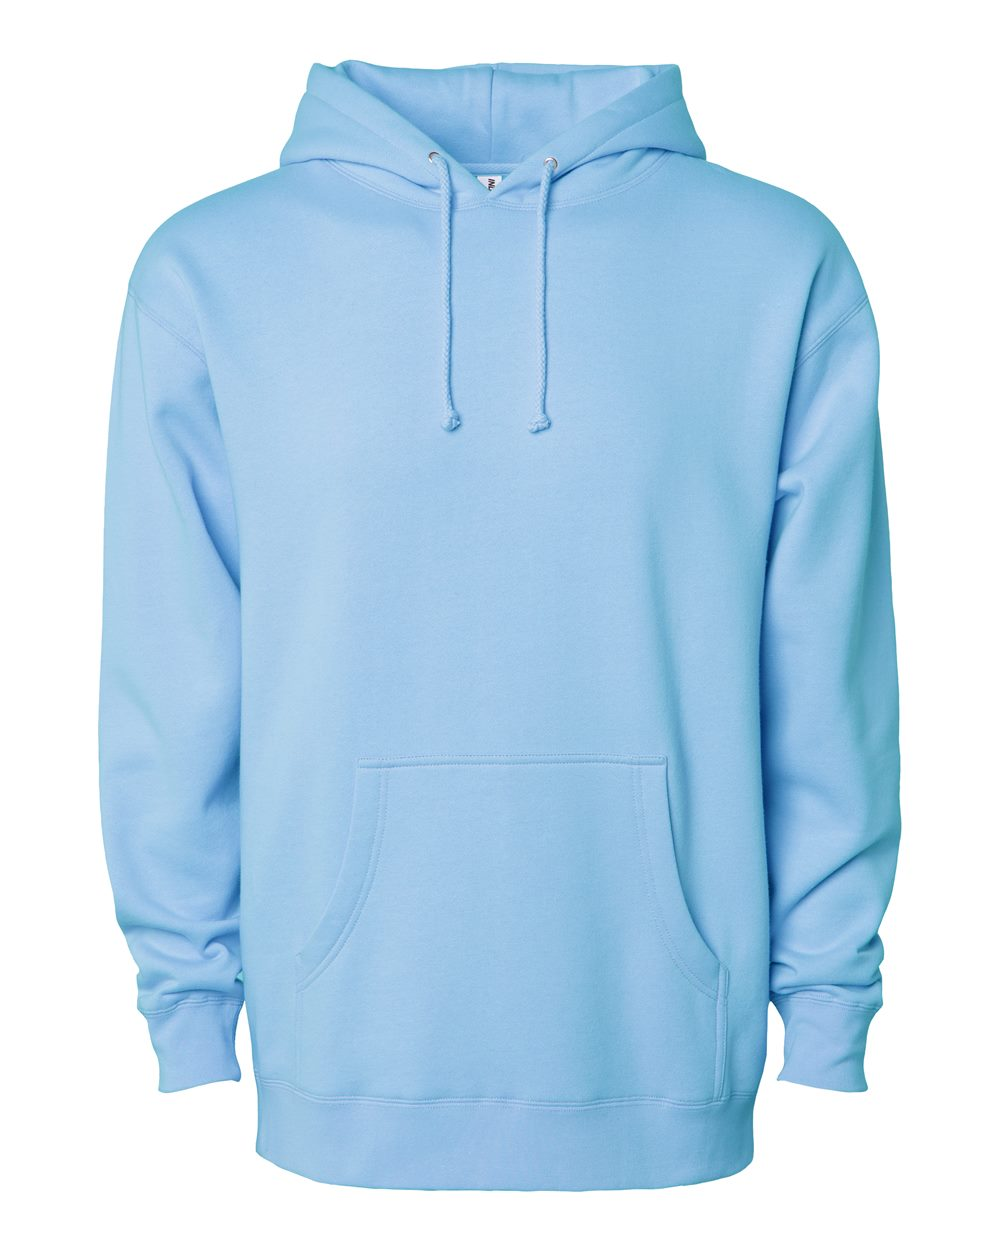 Independent-Trading-Co-Mens-Hooded-Pullover-Sweatshirt-IND4000-up-to-3XL miniature 18